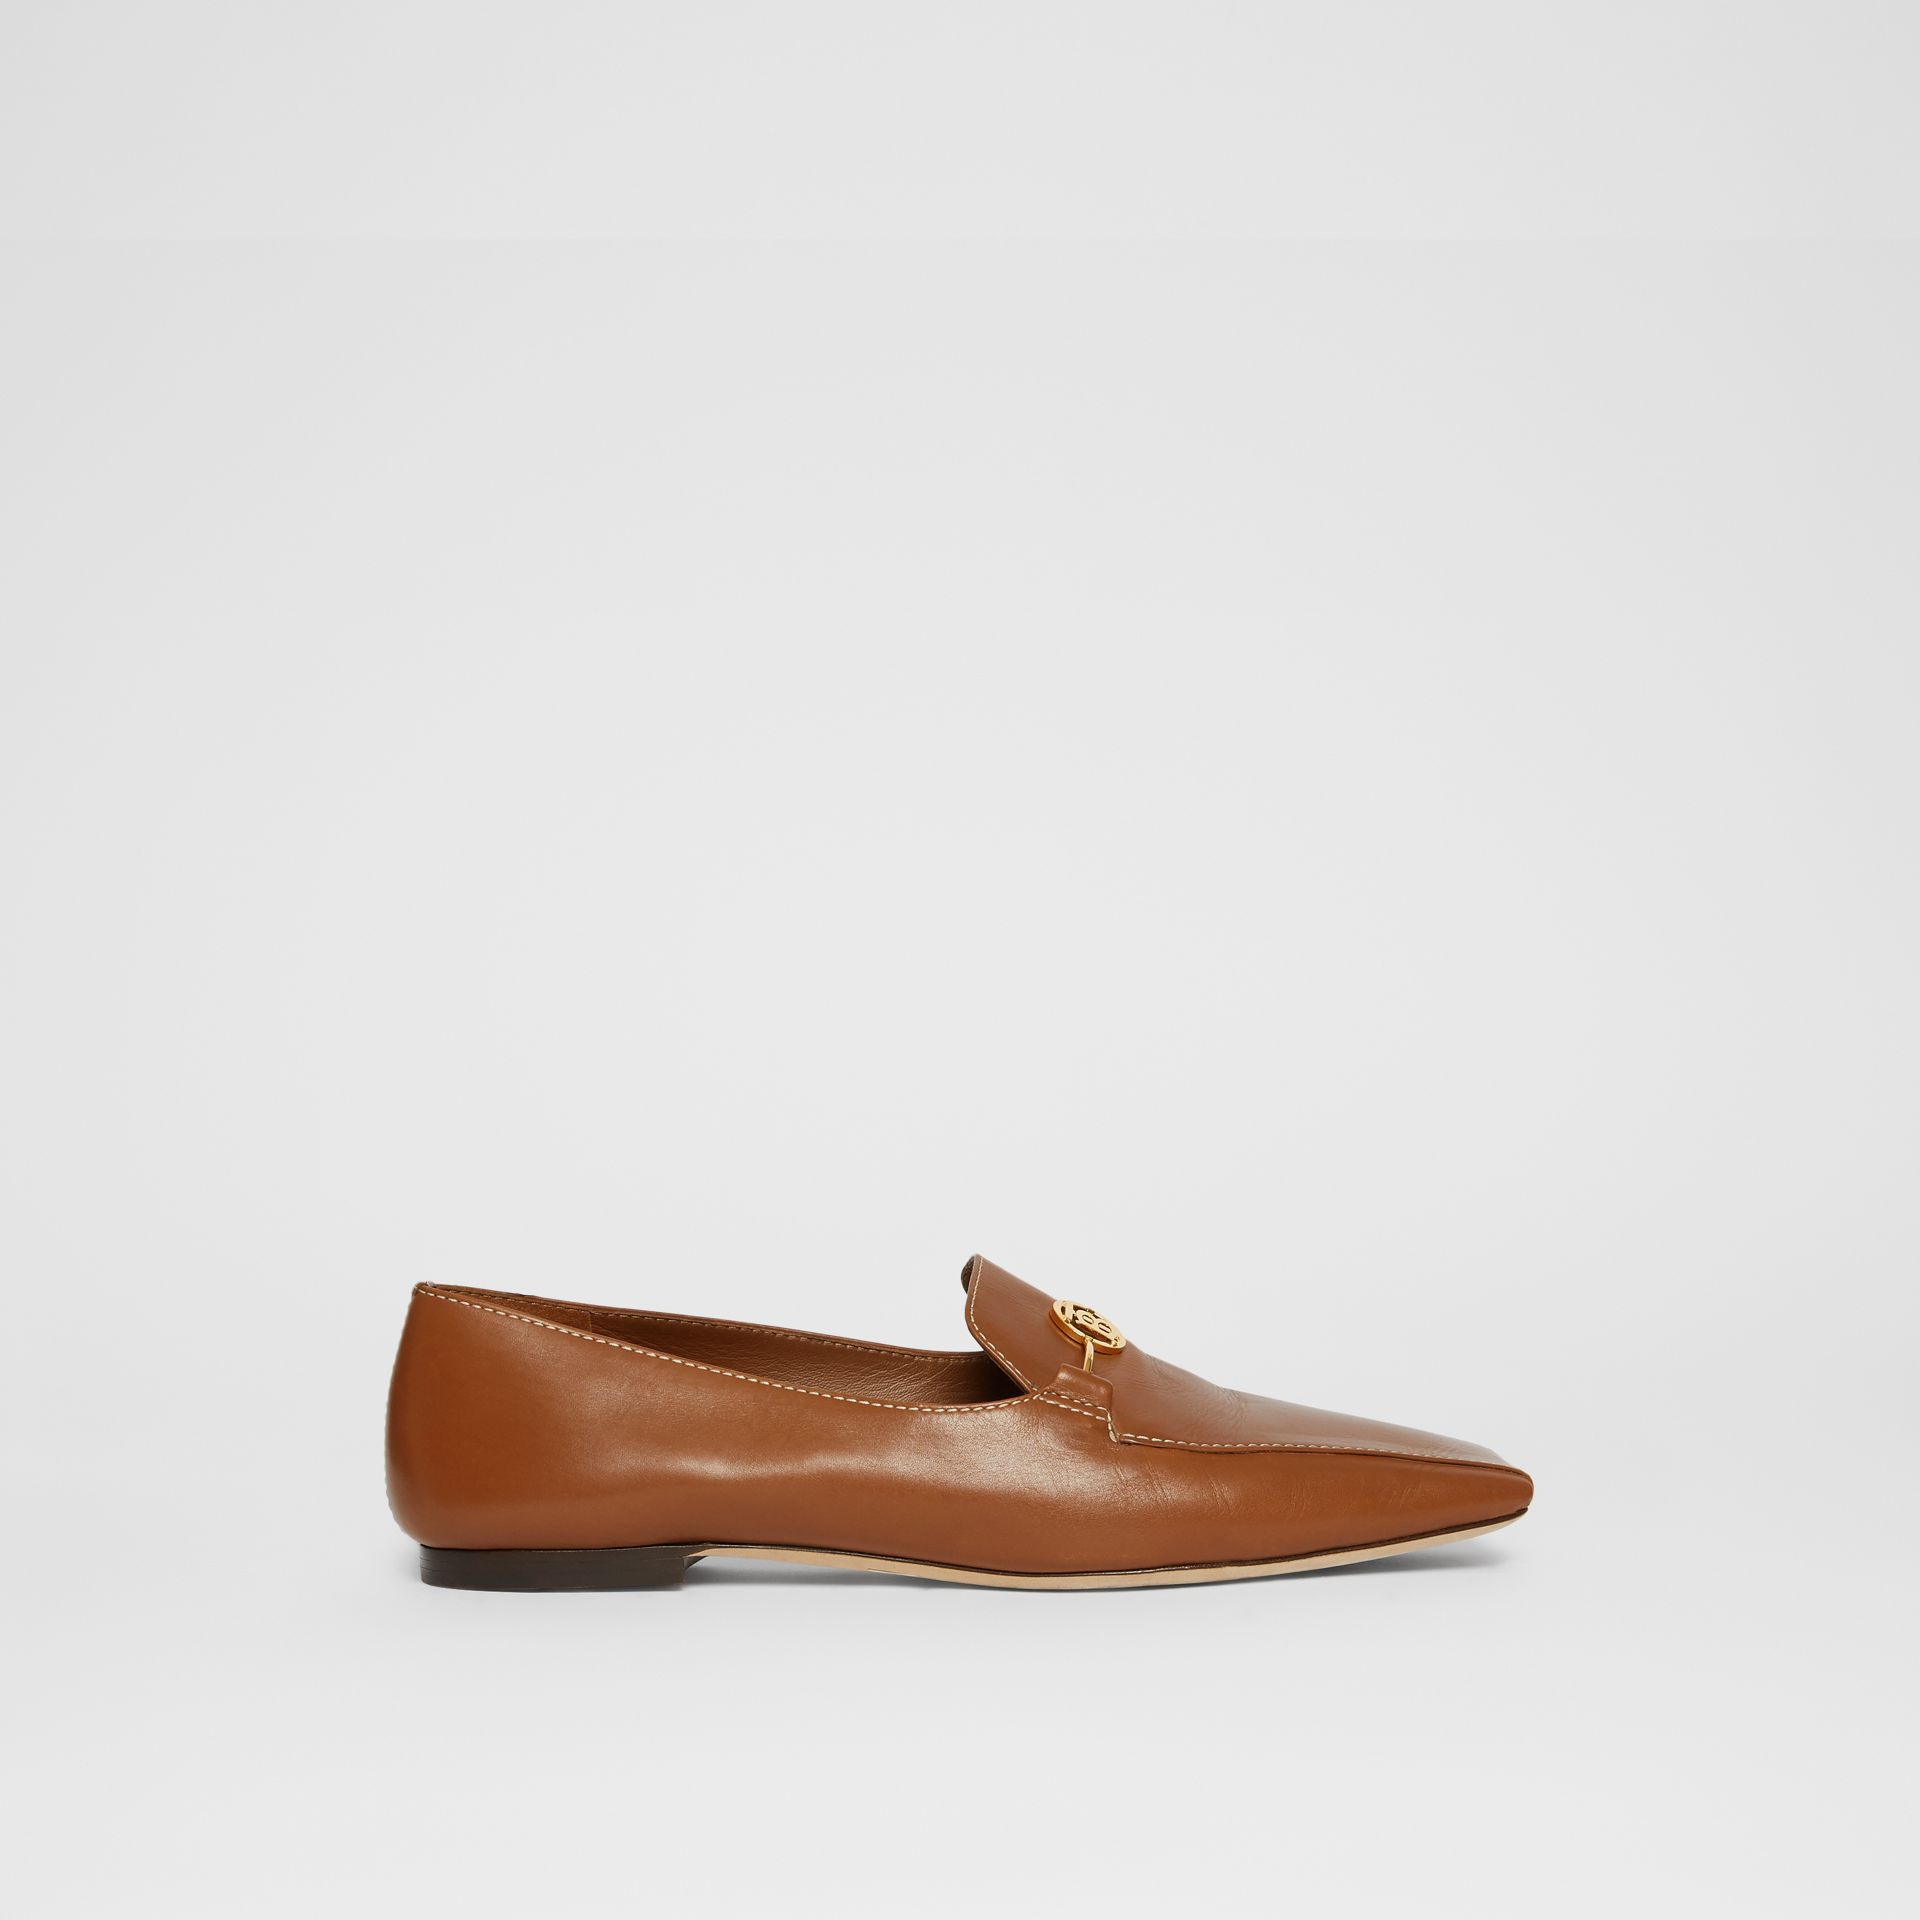 Monogram Motif Leather Loafers in Tan - Women | Burberry - gallery image 5